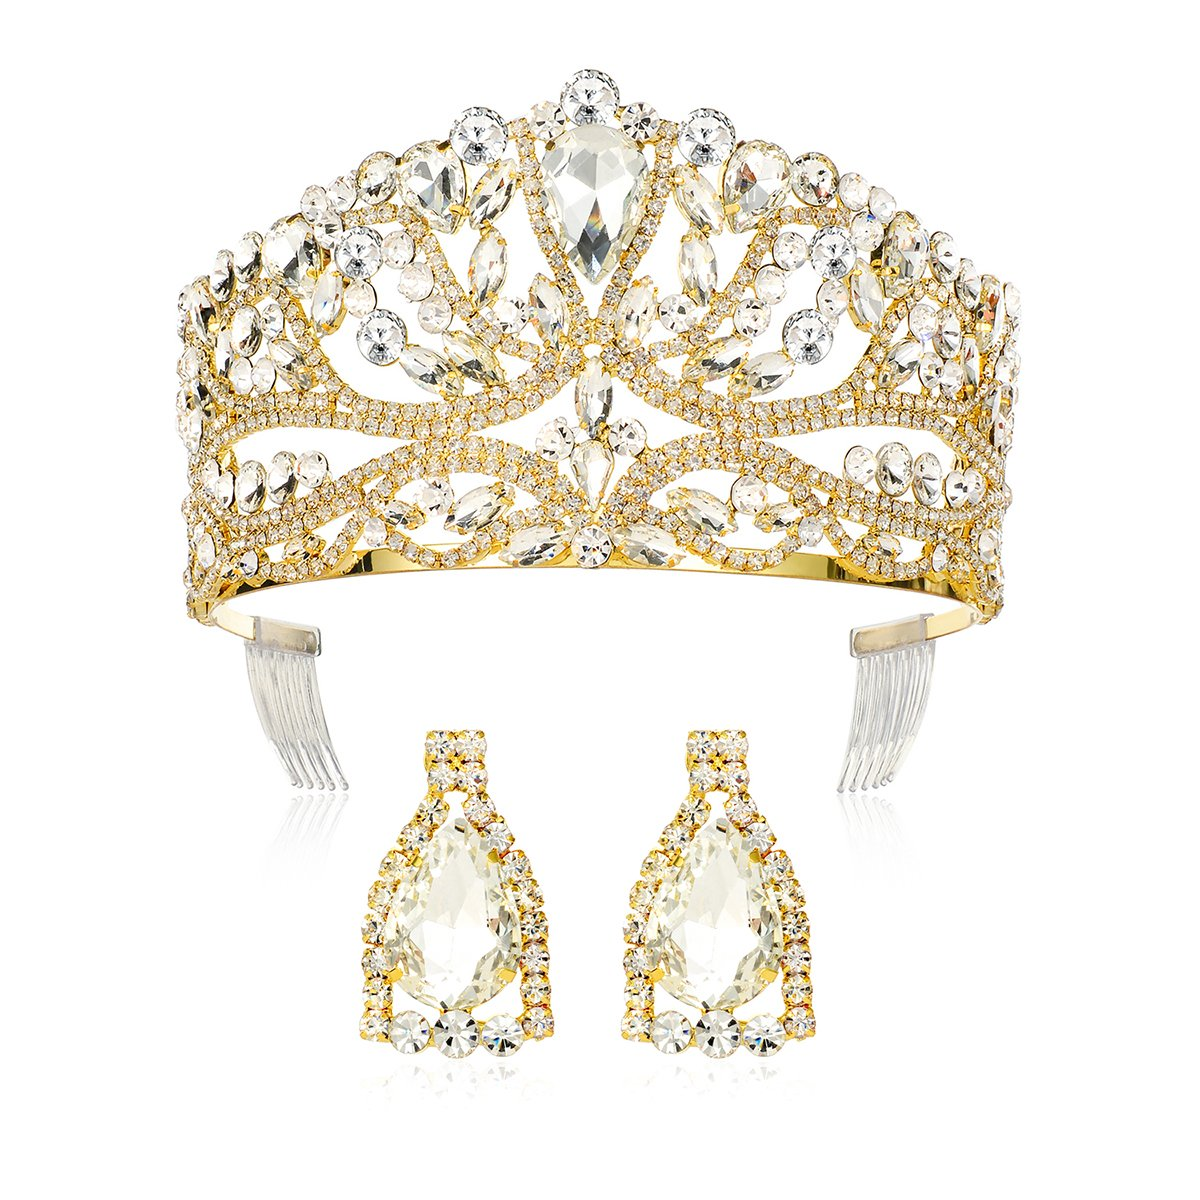 DcZeRong Princess Queen Tiara Crowns Rhinestone Crystal Adult Women Birthday Pageant Prom Gold Crown